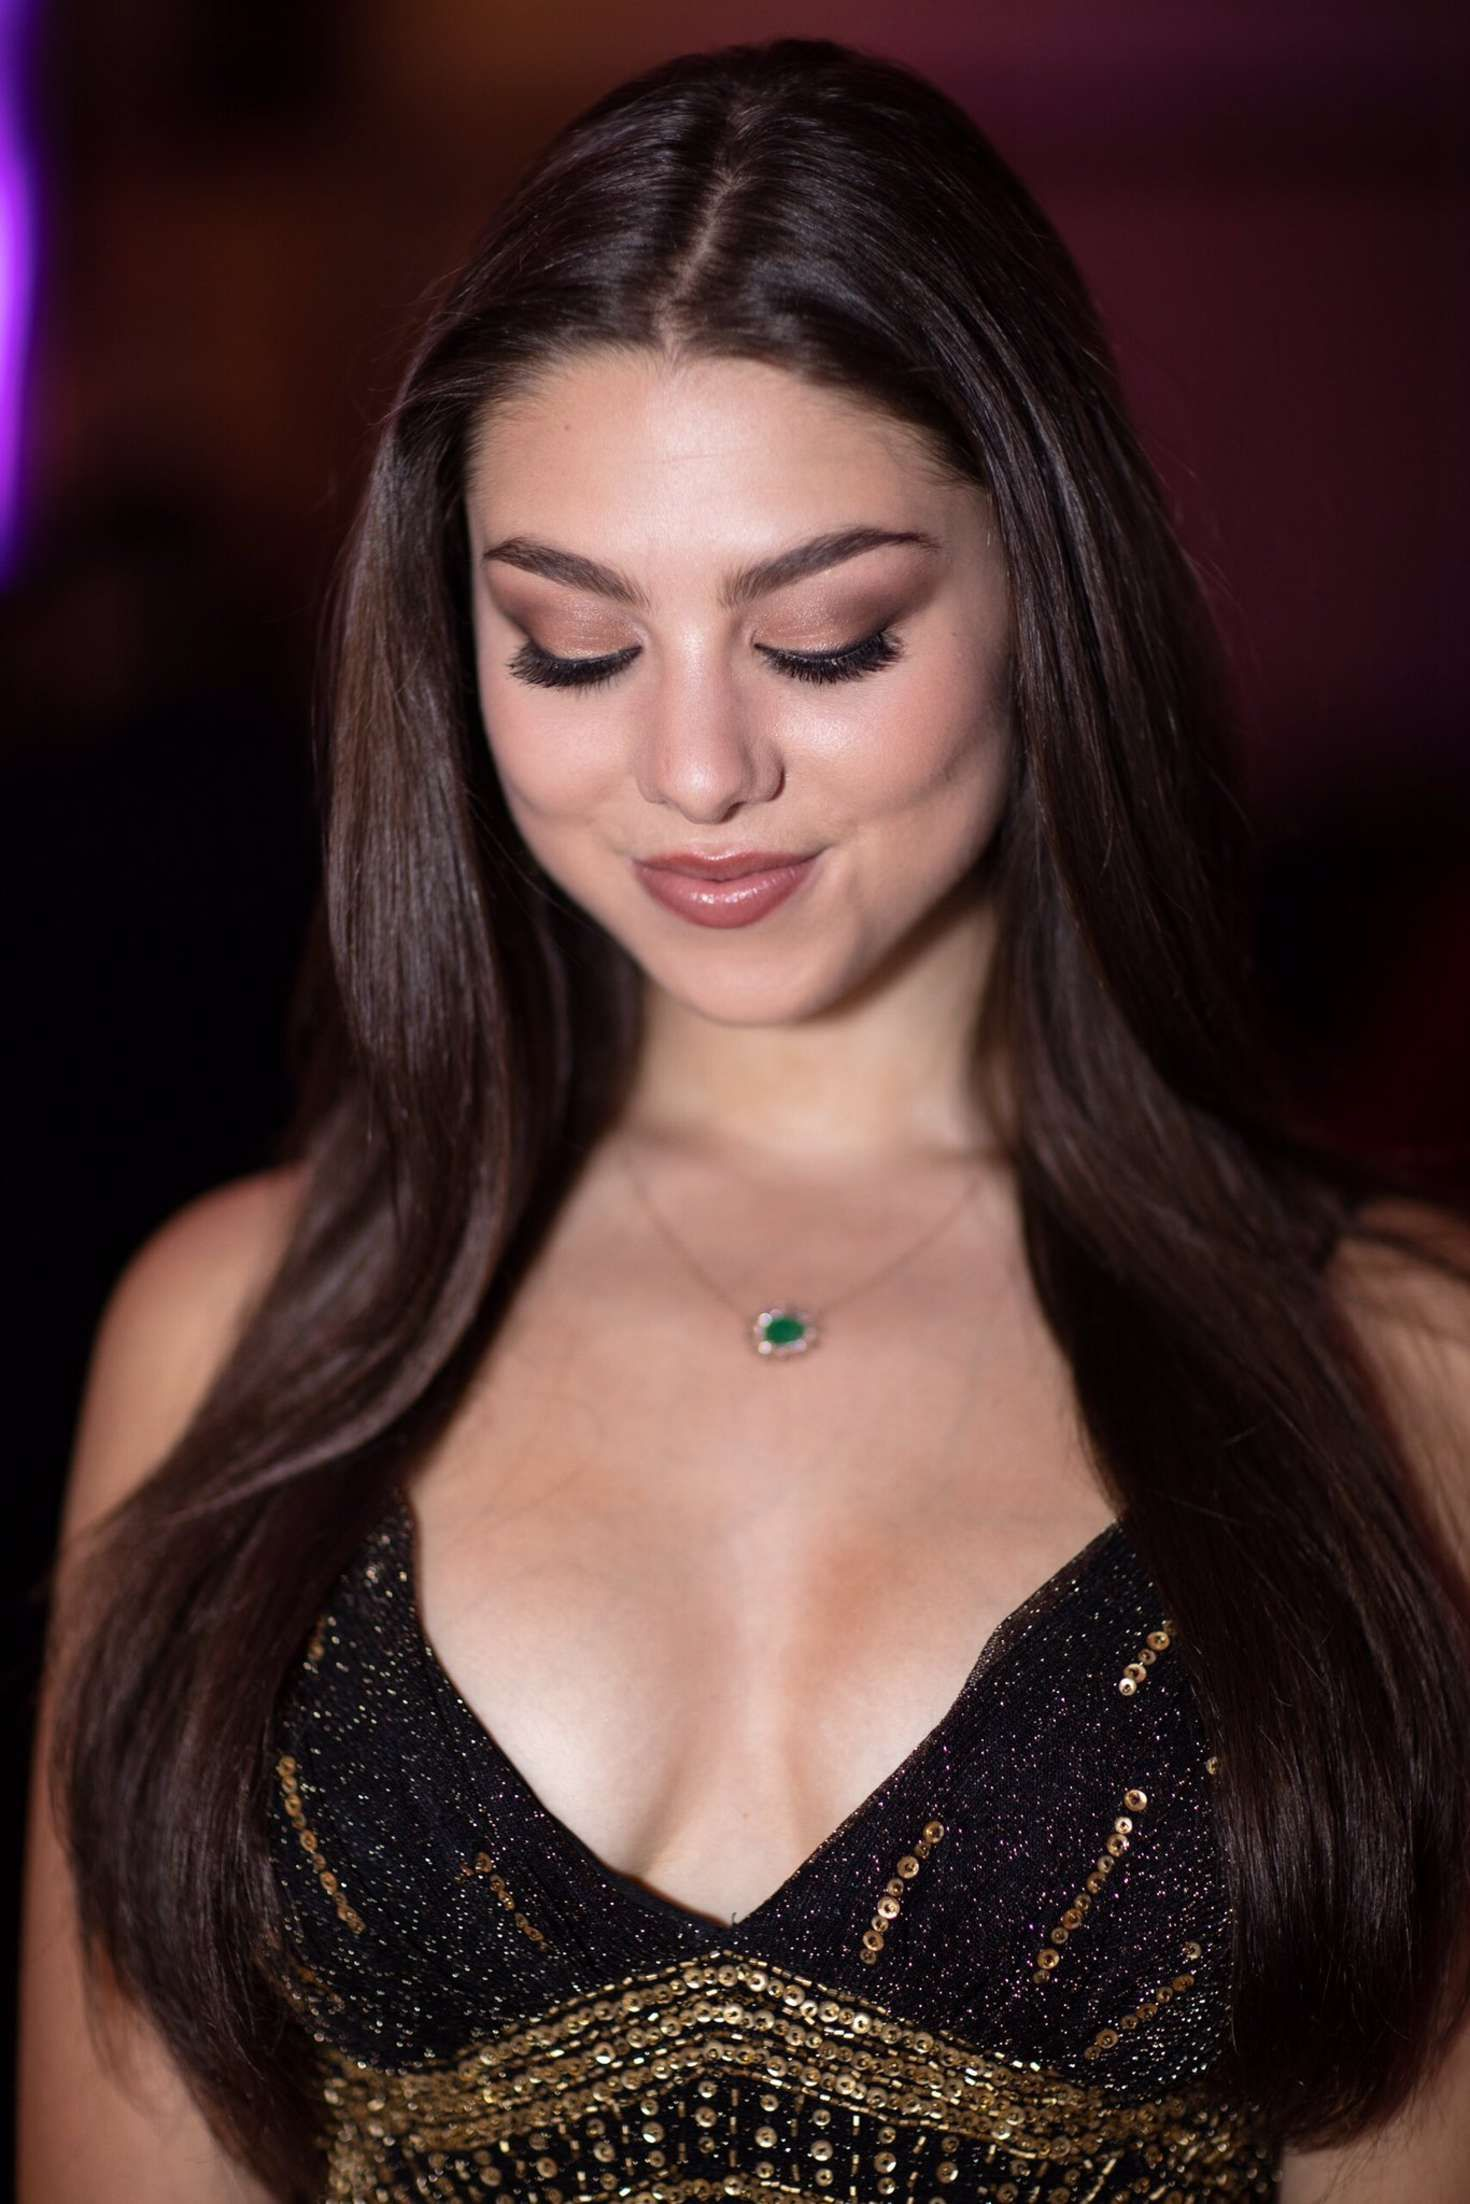 Kira-Kosarin-Cleavage-Collection-10